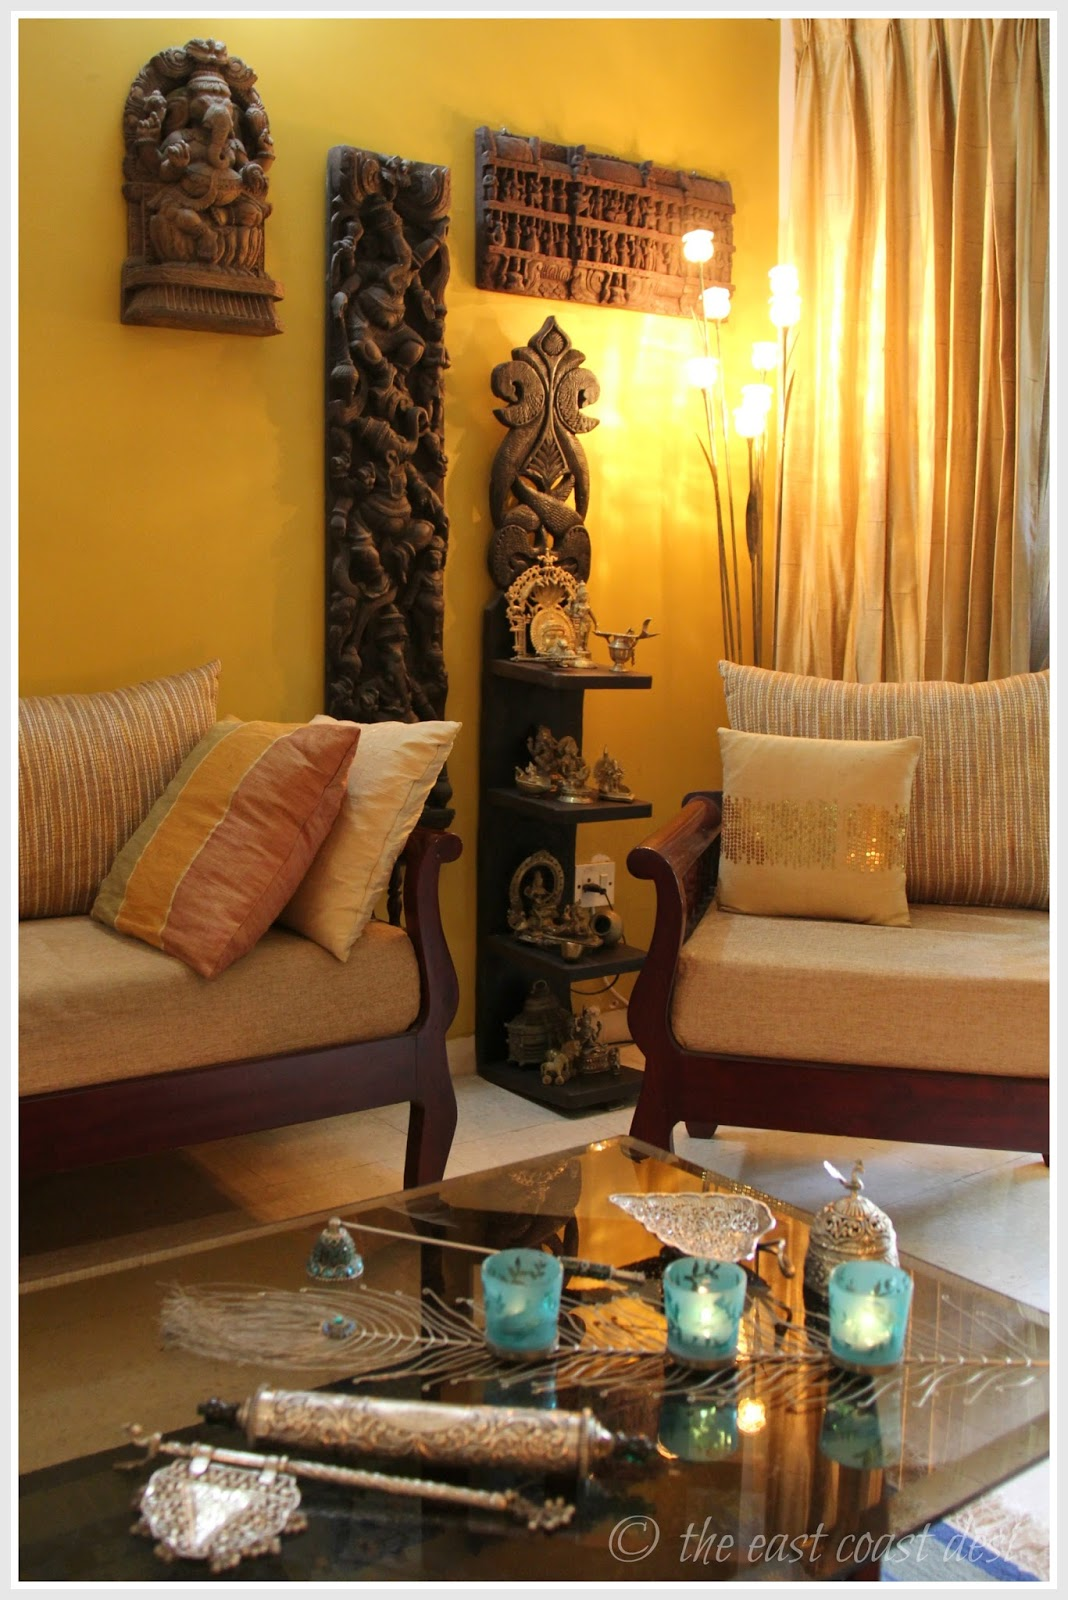 The east coast desi living with what you love home tour for Interior designs in india